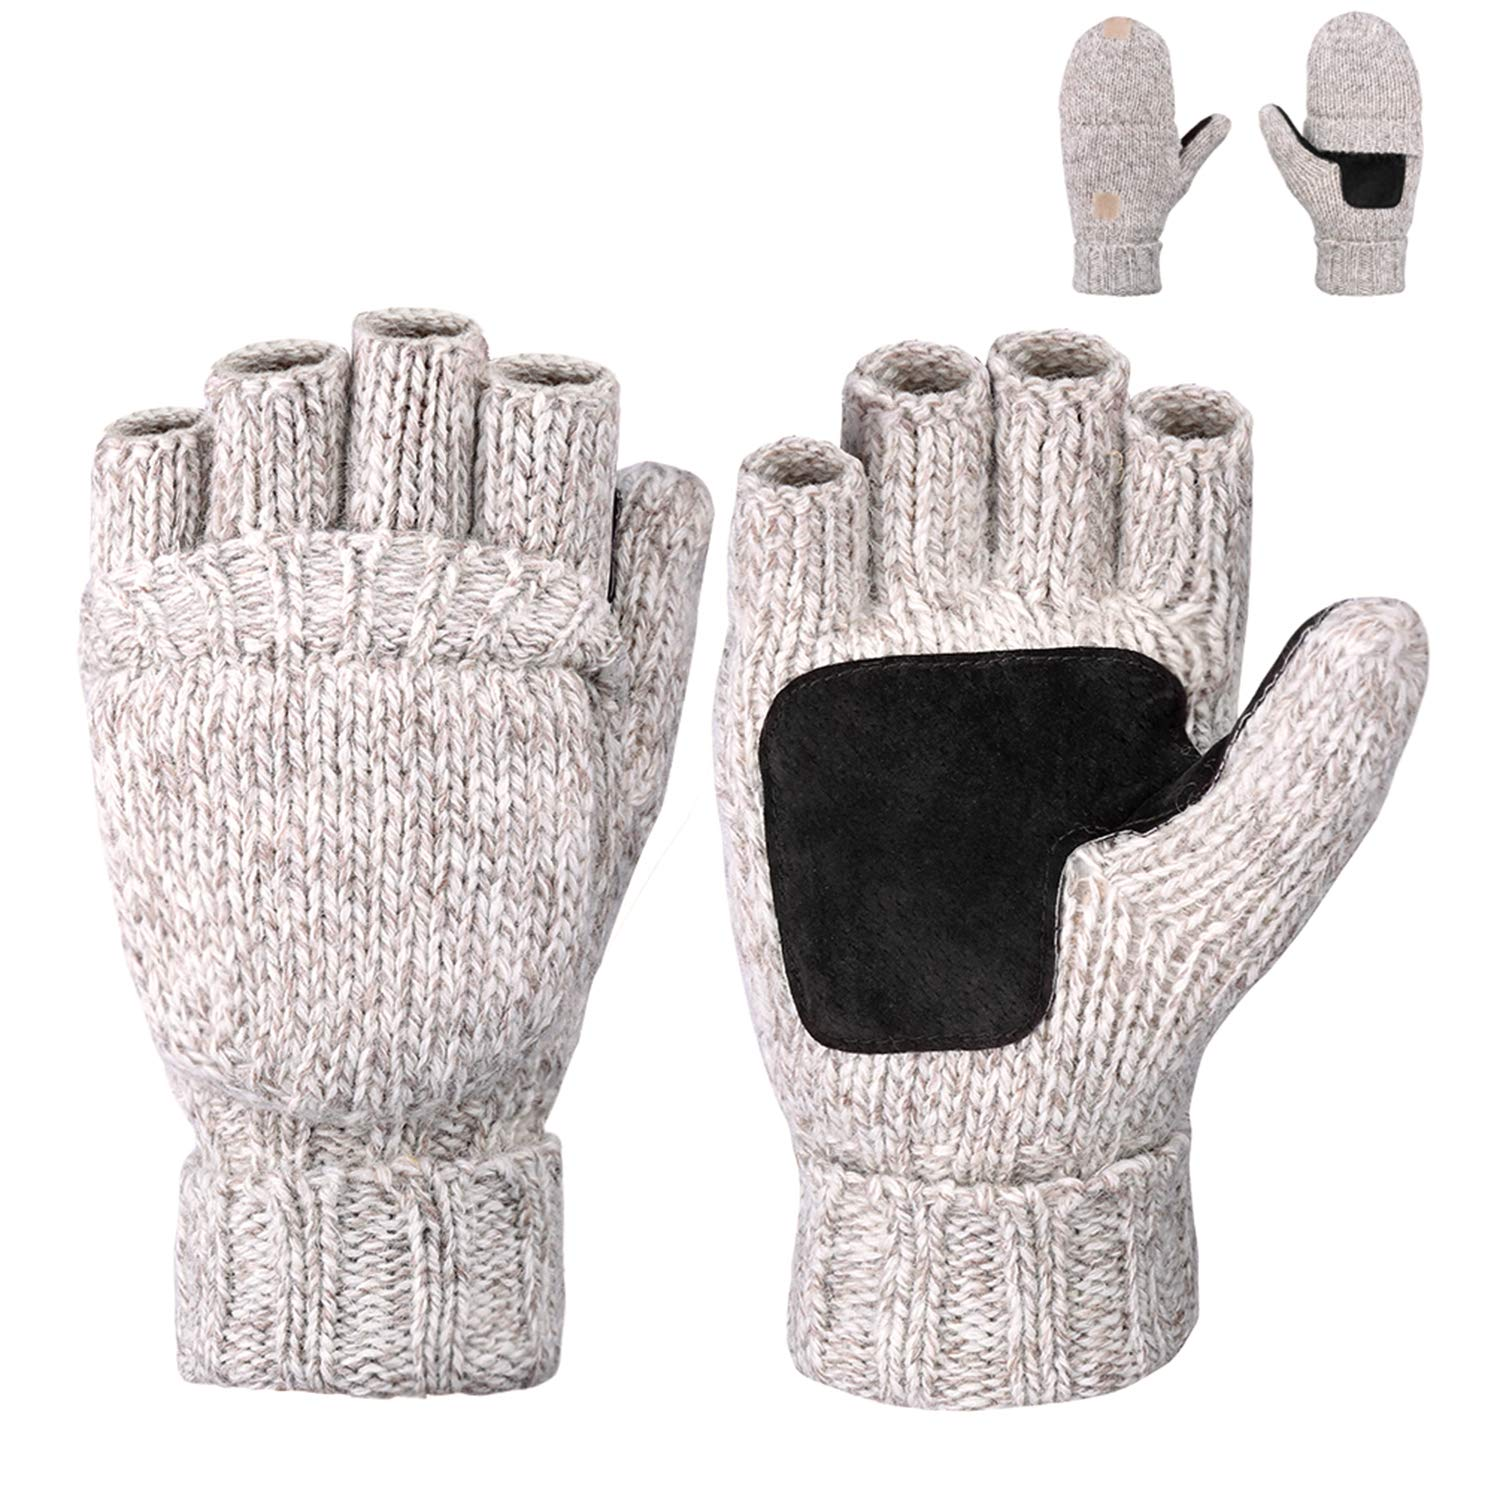 Maylisacc Winter Thick Wool Blended Fingerless-Gloves for Men Half Finger Convertible-Mittens with Fleece Lining